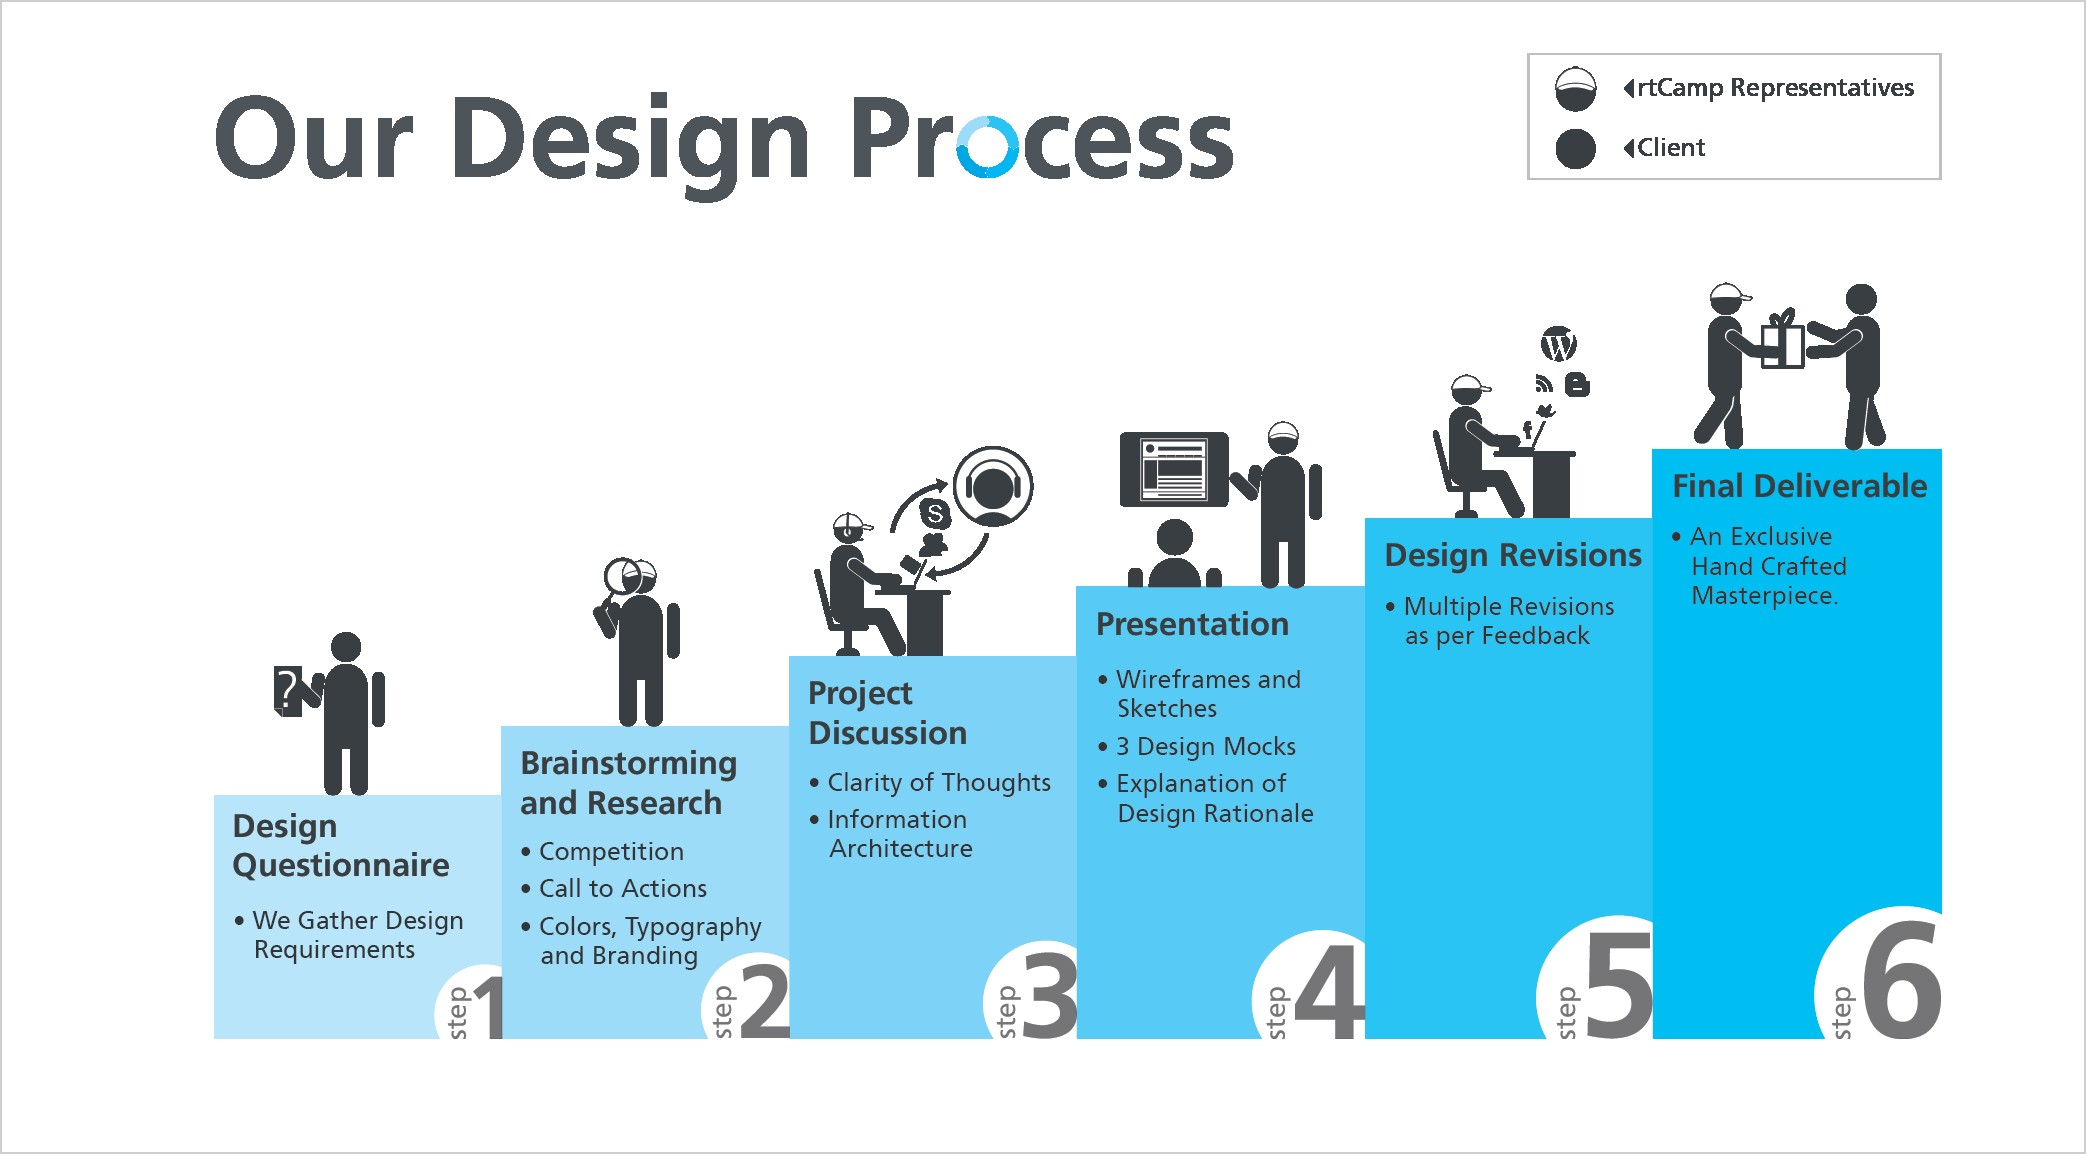 Engineering Design Process Diagram Our Design Process Concept V2 Rs WordPress theme Design Of Engineering Design Process Diagram